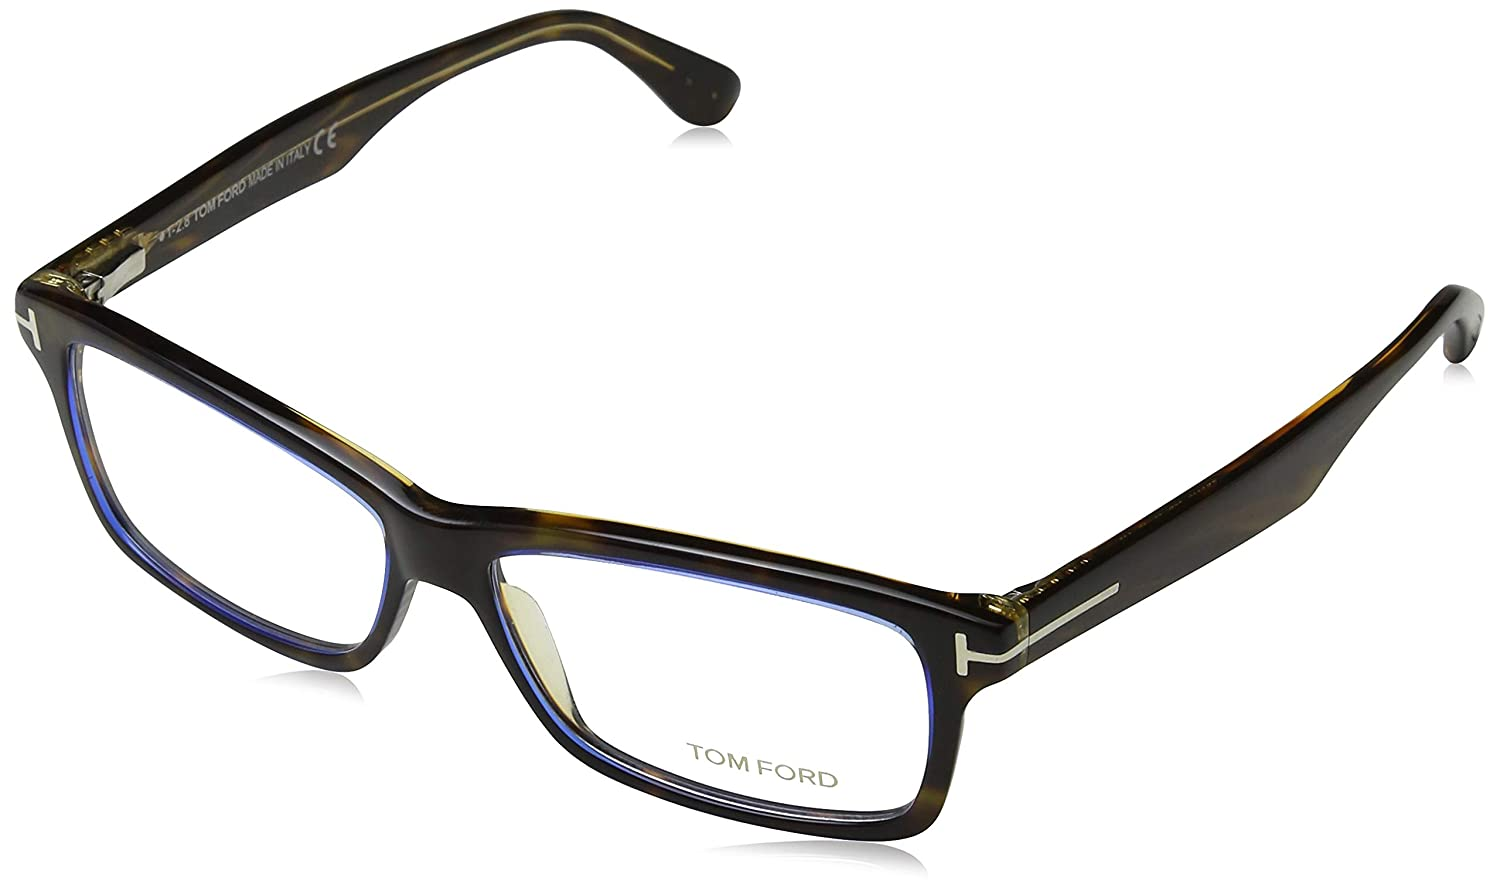 acf061ba6b Amazon.com  Tom Ford Unisex Ft5146 56Mm Optical Frames  Clothing